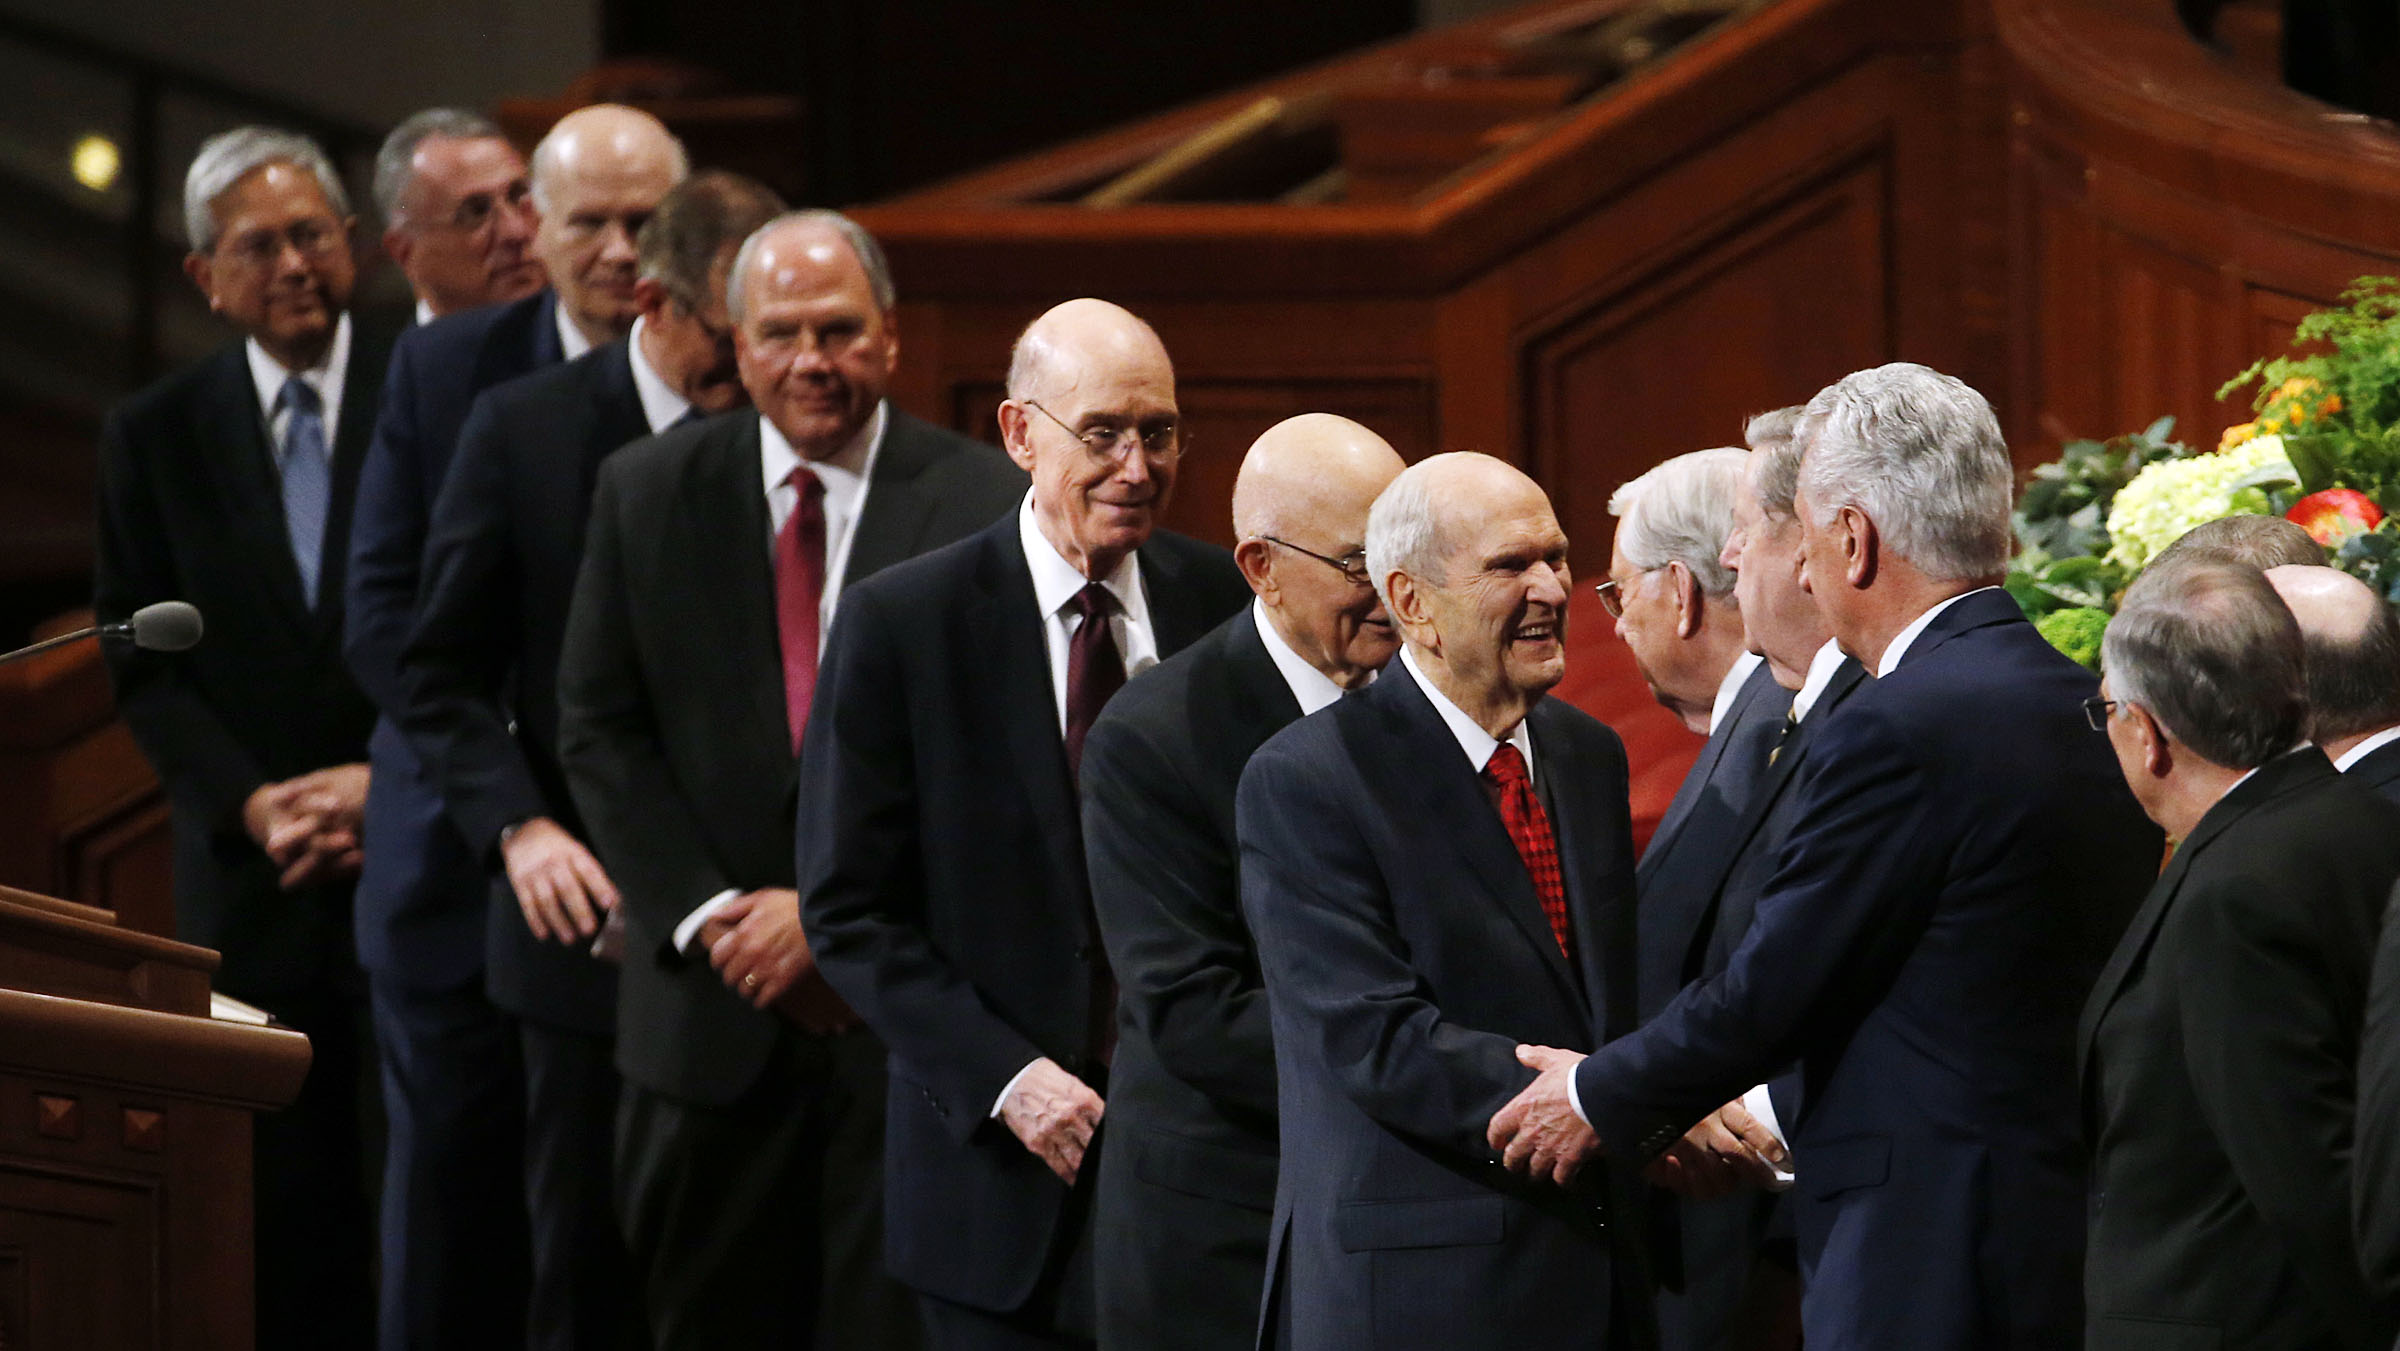 President Russell M. Nelson of The Church of Jesus Christ of Latter-day Saints, facing camera, shakes hands with Elder Dieter F. Uchtdorf of the Quorum of the Twelve Apostles, as he leaves the Conference Center following the priesthood session of the 189th Annual General Conference in the Conference Center in Salt Lake City on Saturday, April 6, 2019.